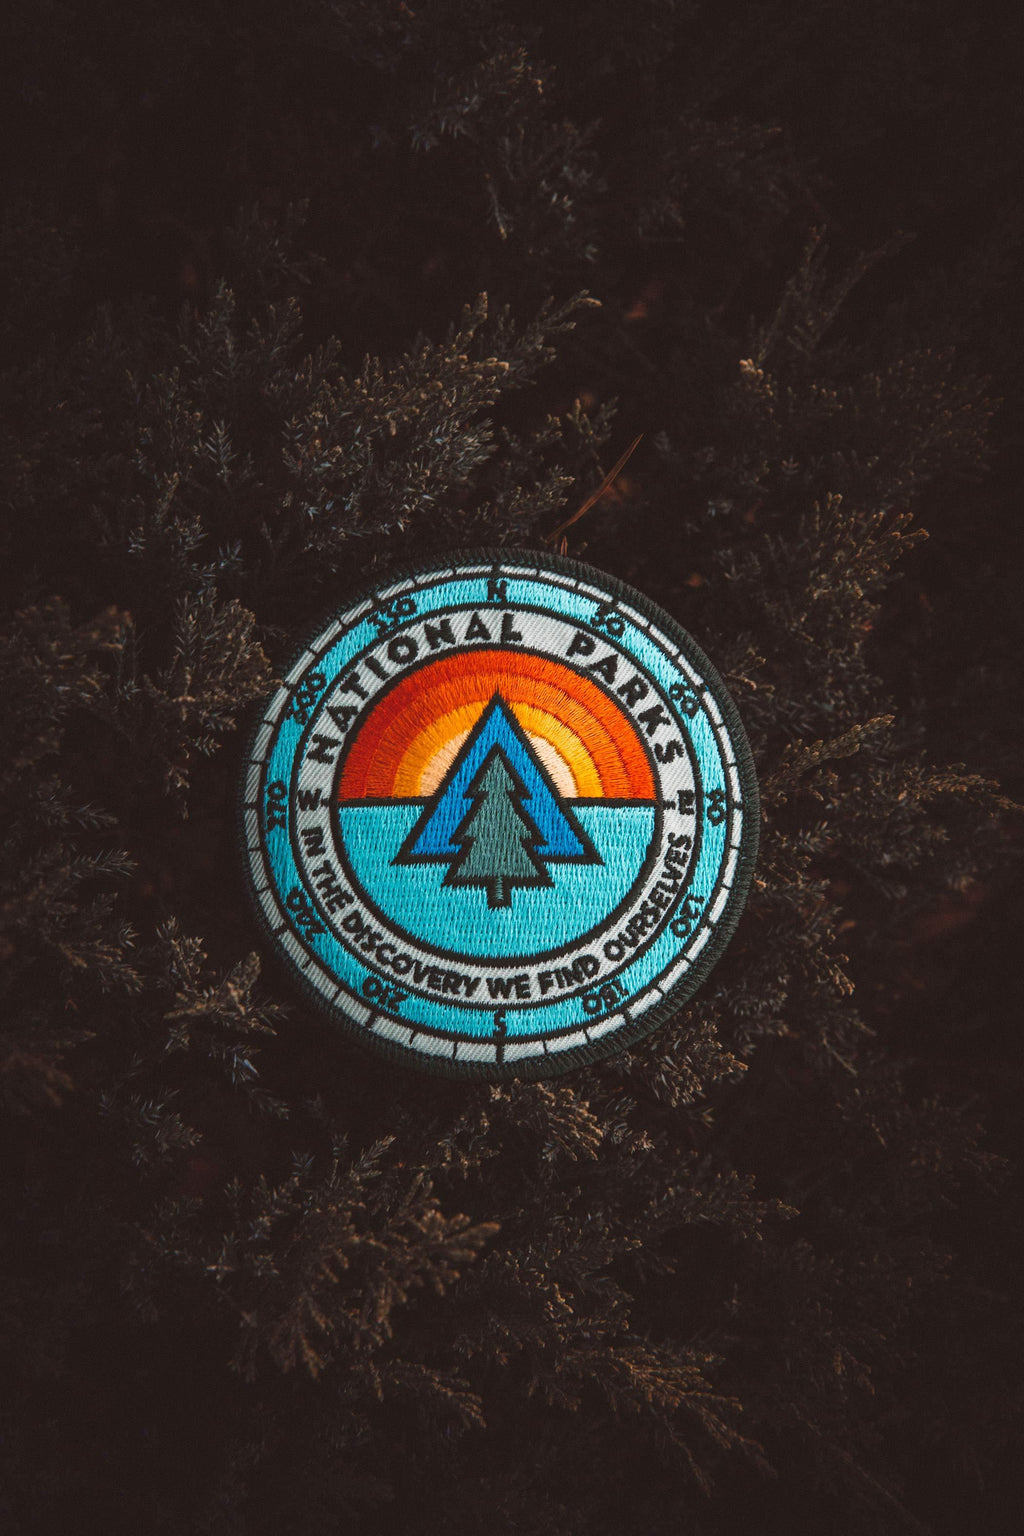 National Parks Sunrise Explorer's Patch - The Parks Apparel